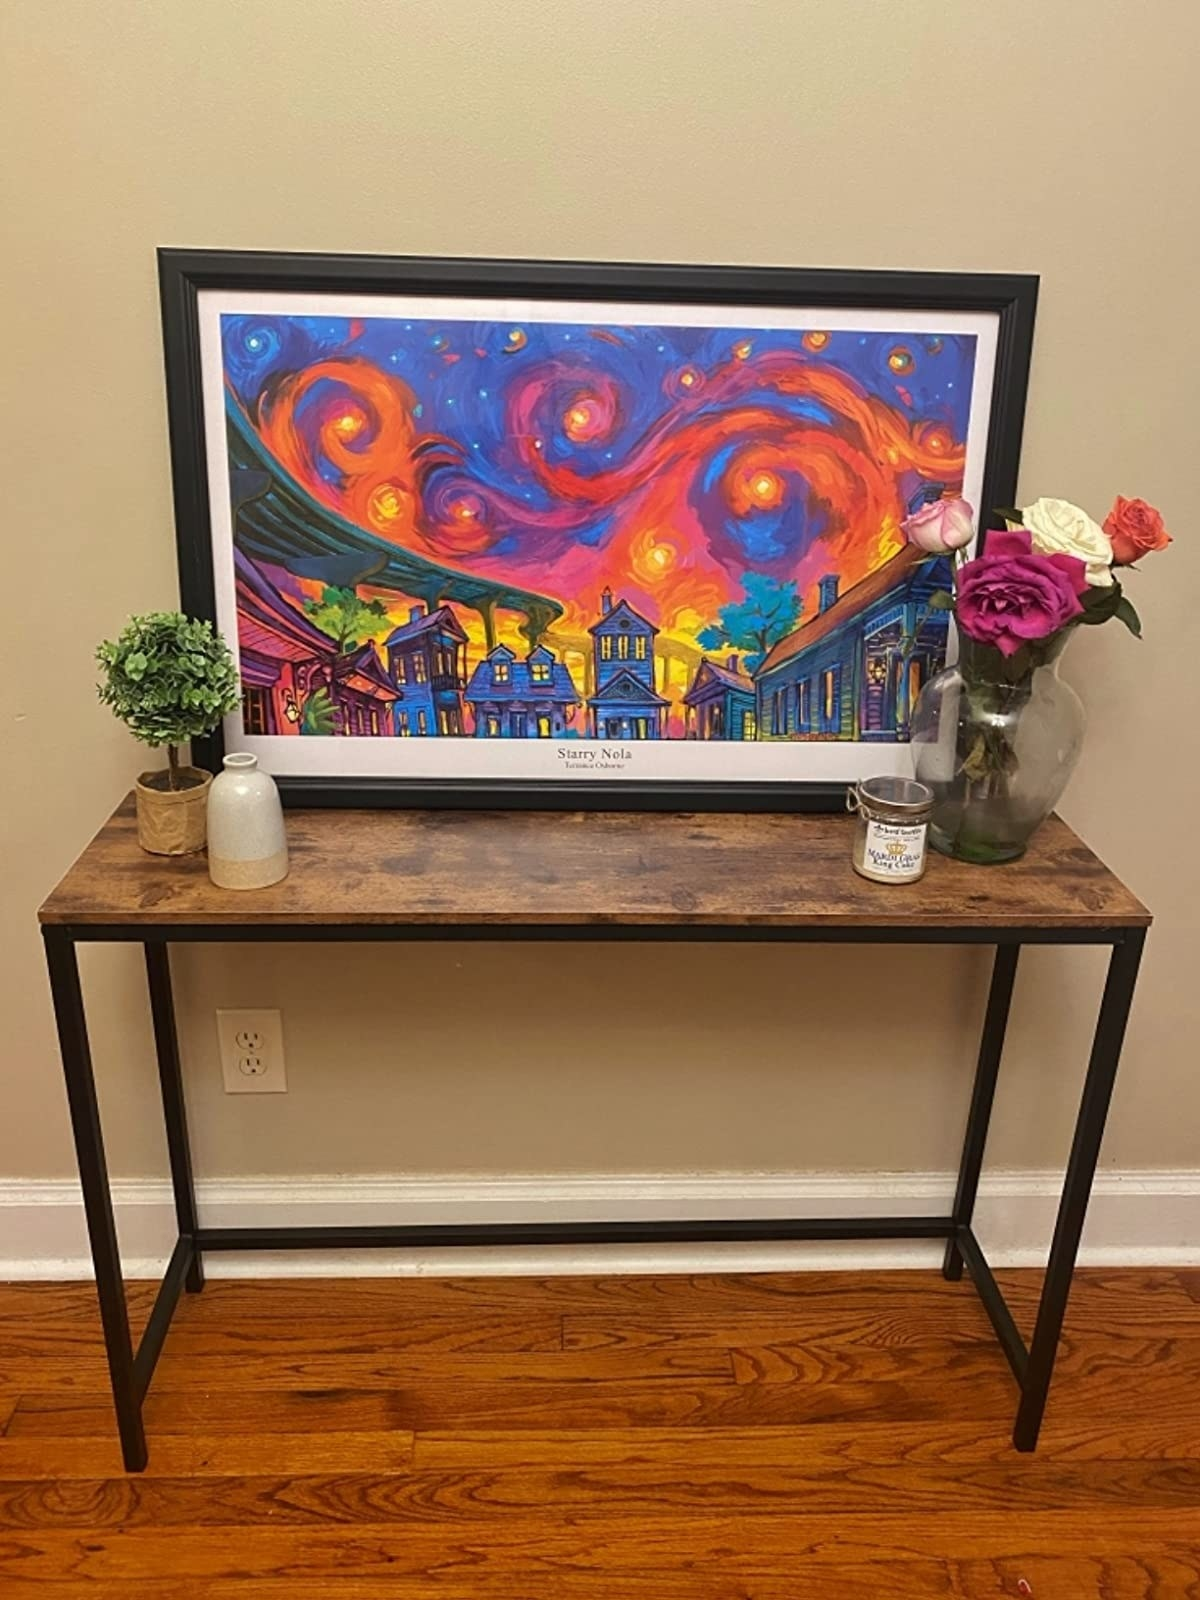 The table with a black metal frame and wooden top